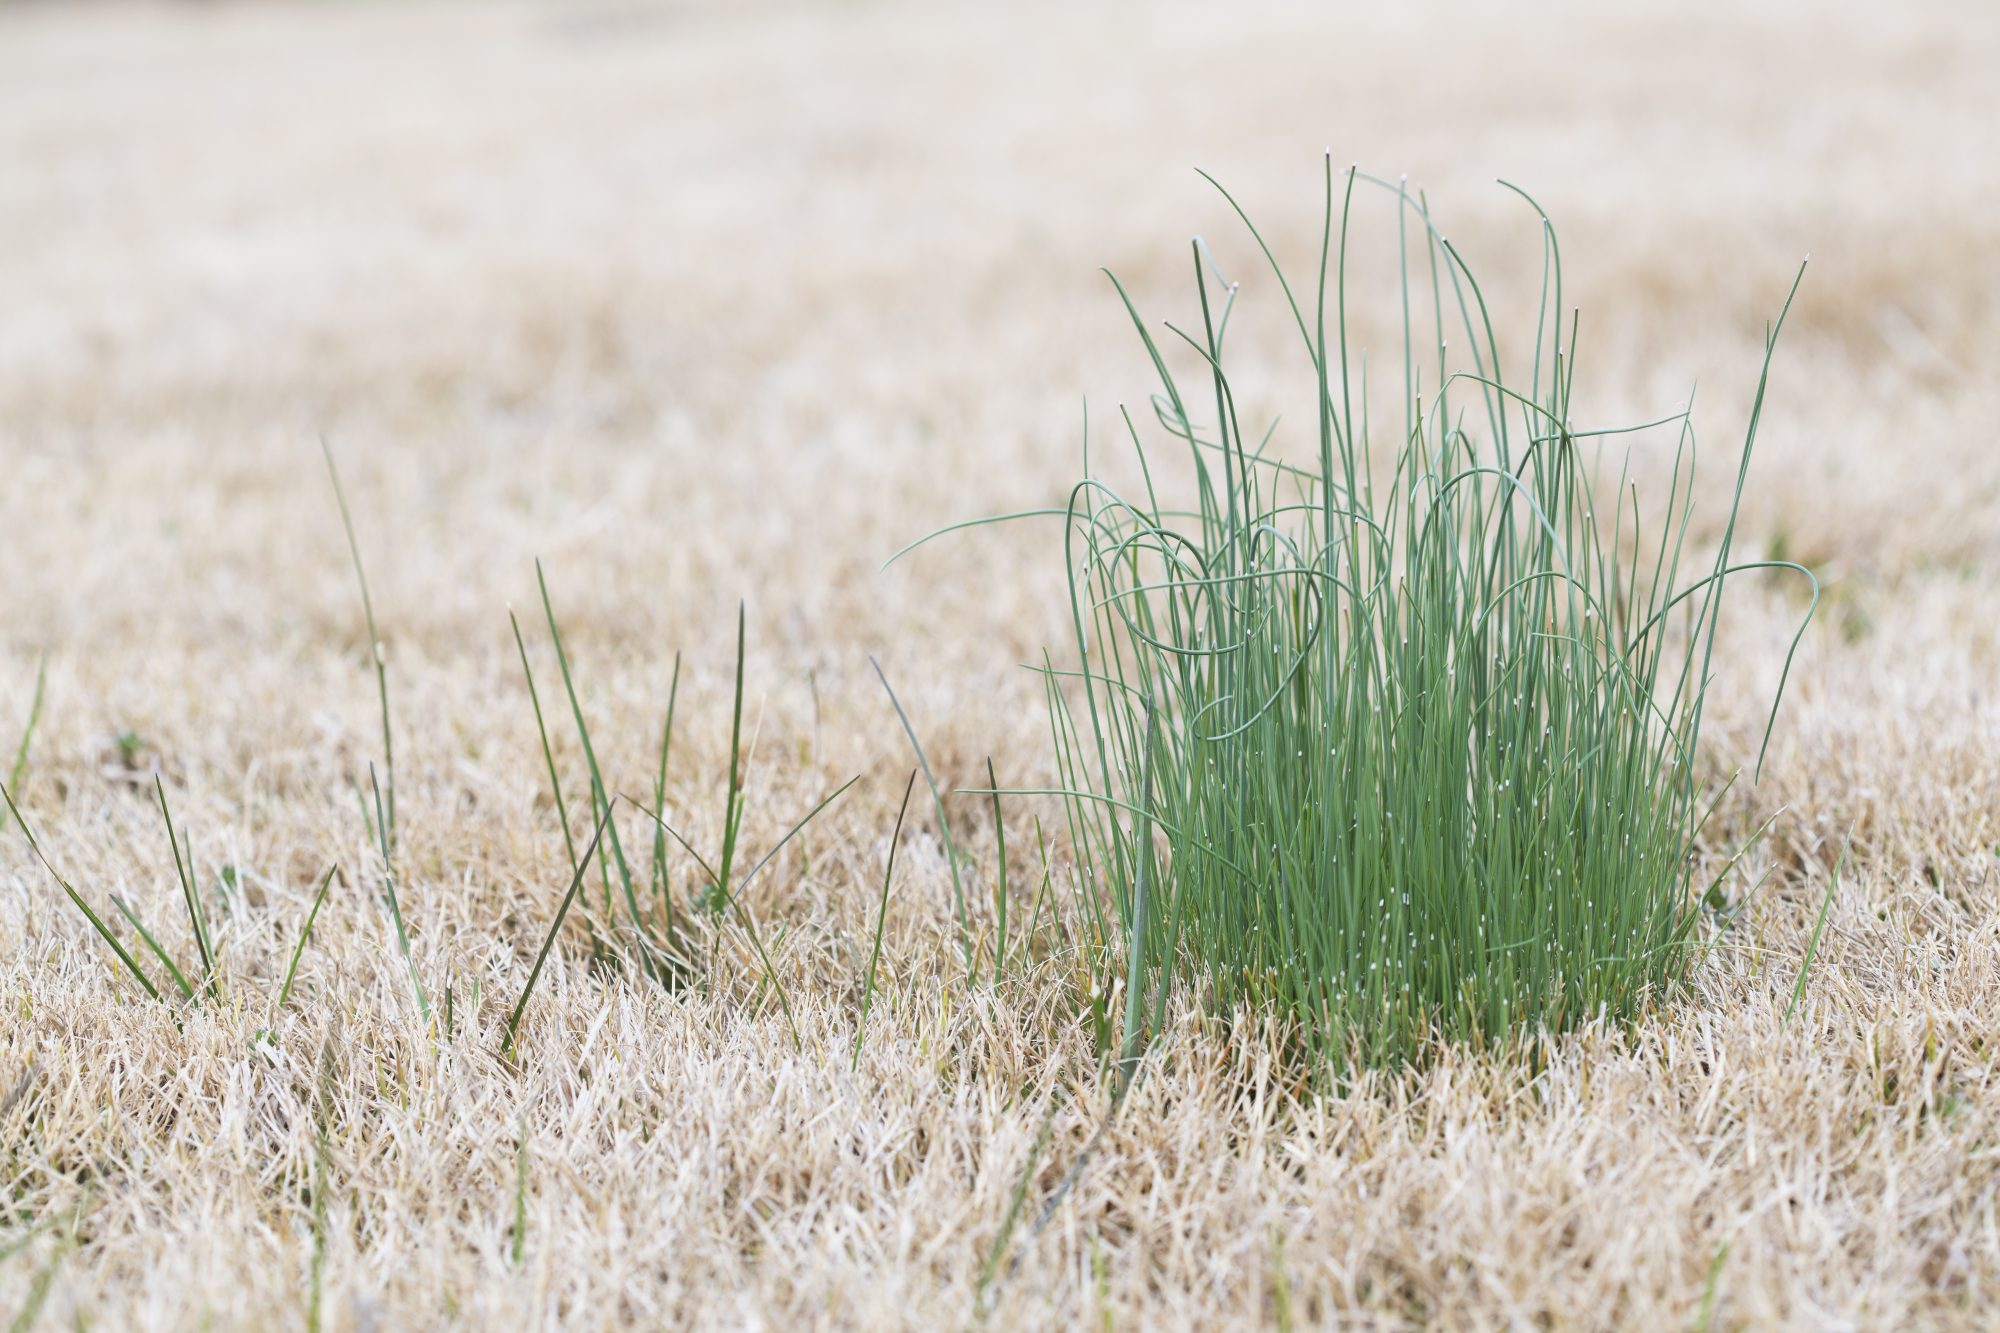 Wild Onion Growing in Dormant Lawn Grass